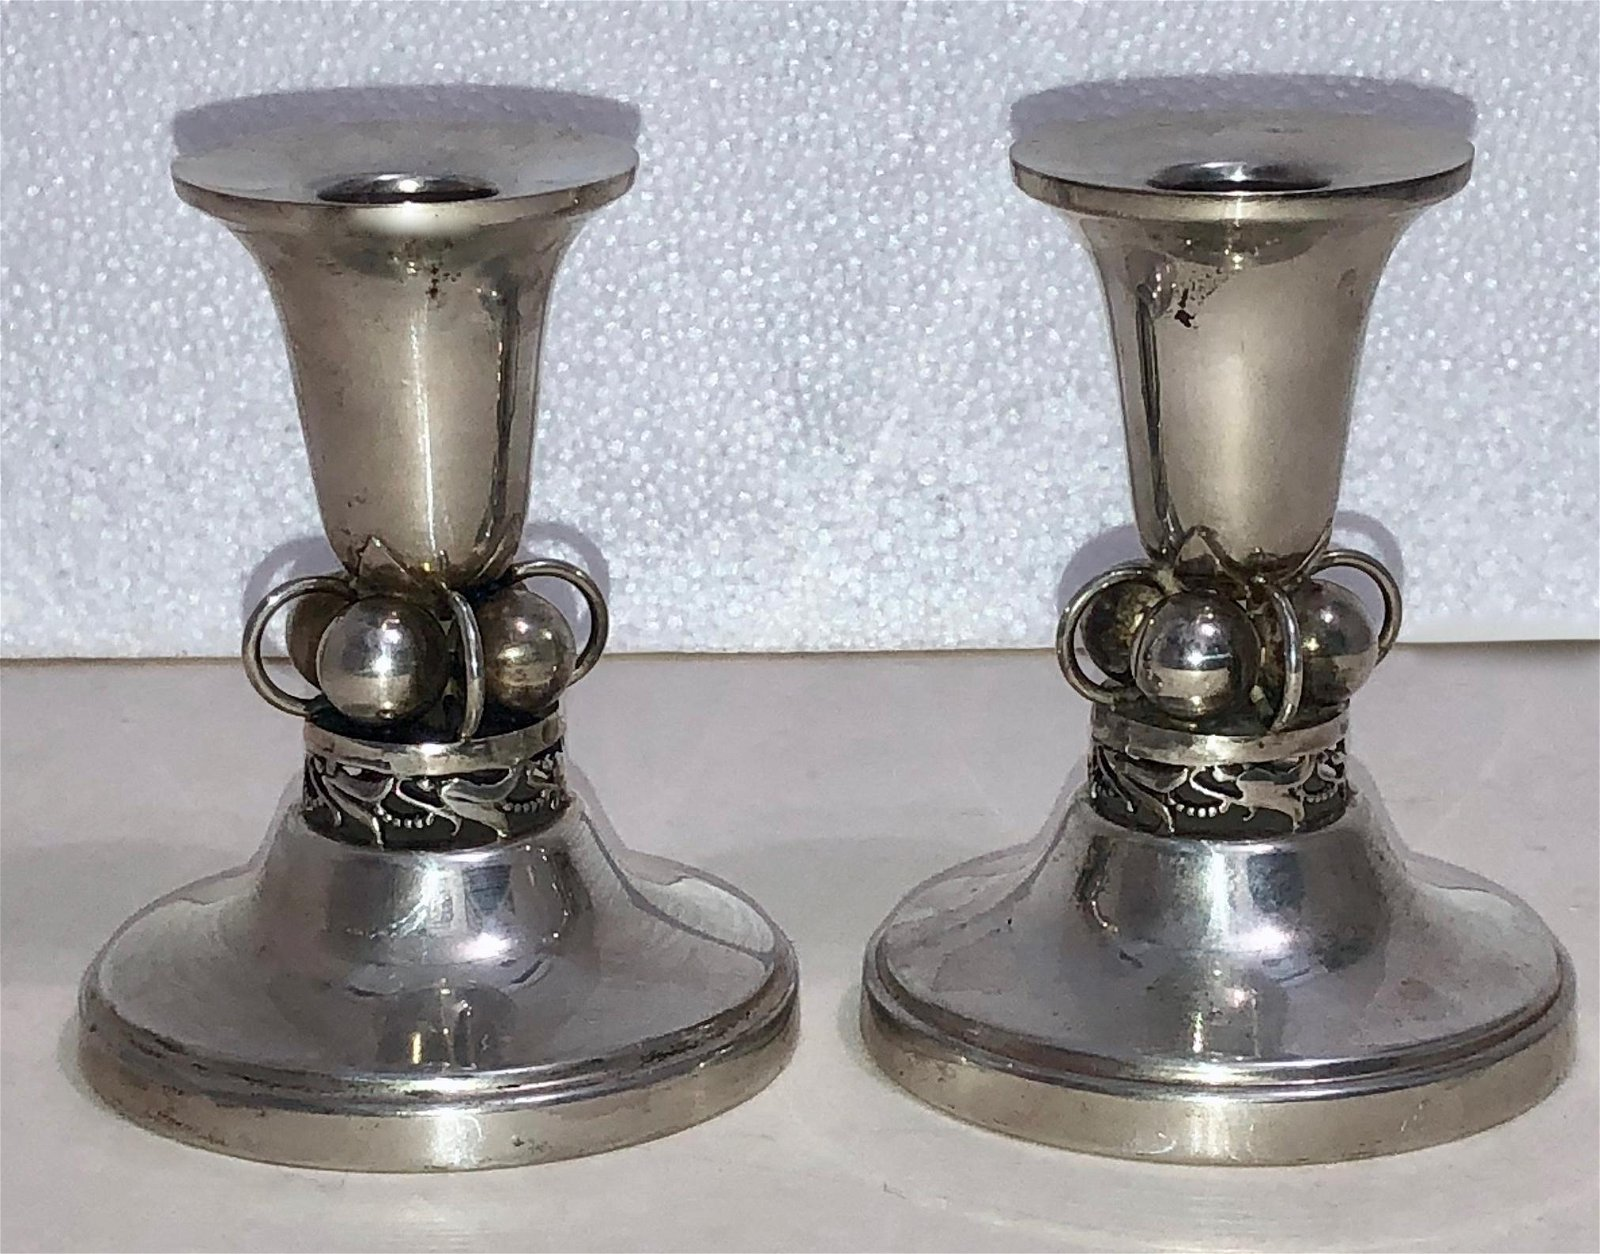 Pair of Modernist Sterling Silver Candlesticks